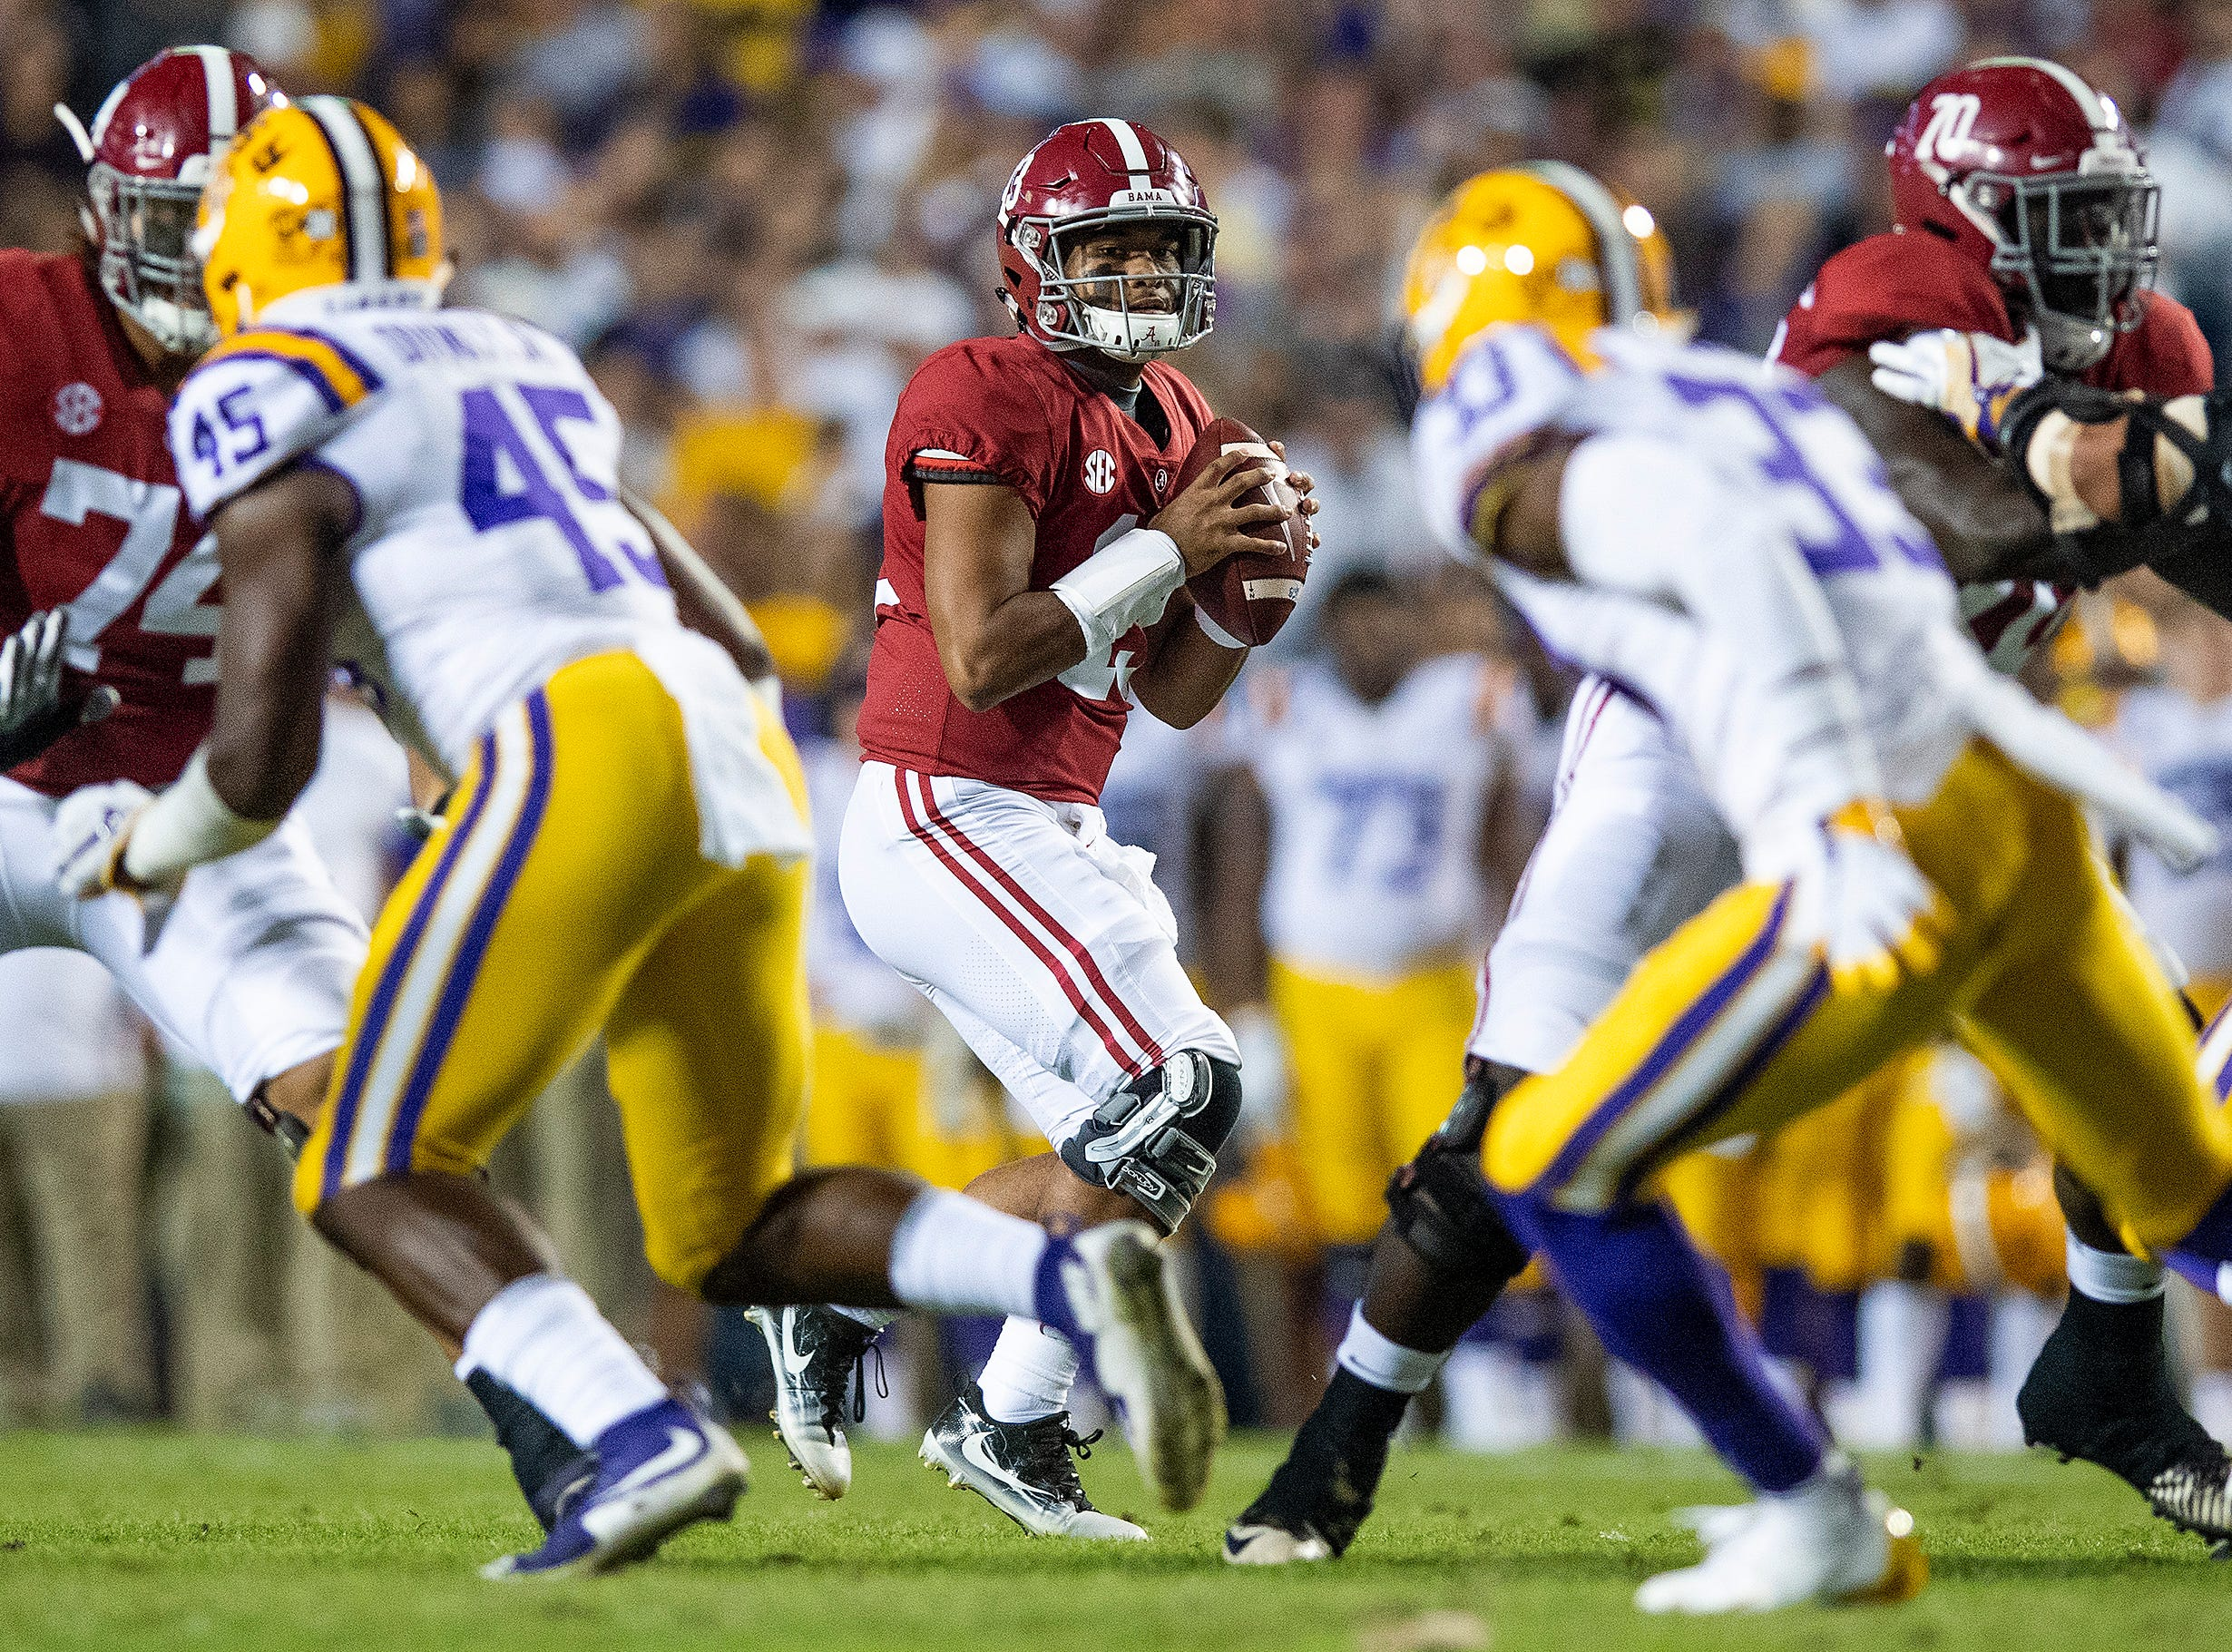 Alabama quarterback Tua Tagovailoa (13) looks to pass against Louisiana State University in first half action at Tiger Stadium in Baton Rouge, La., on Saturday November 3, 2018.